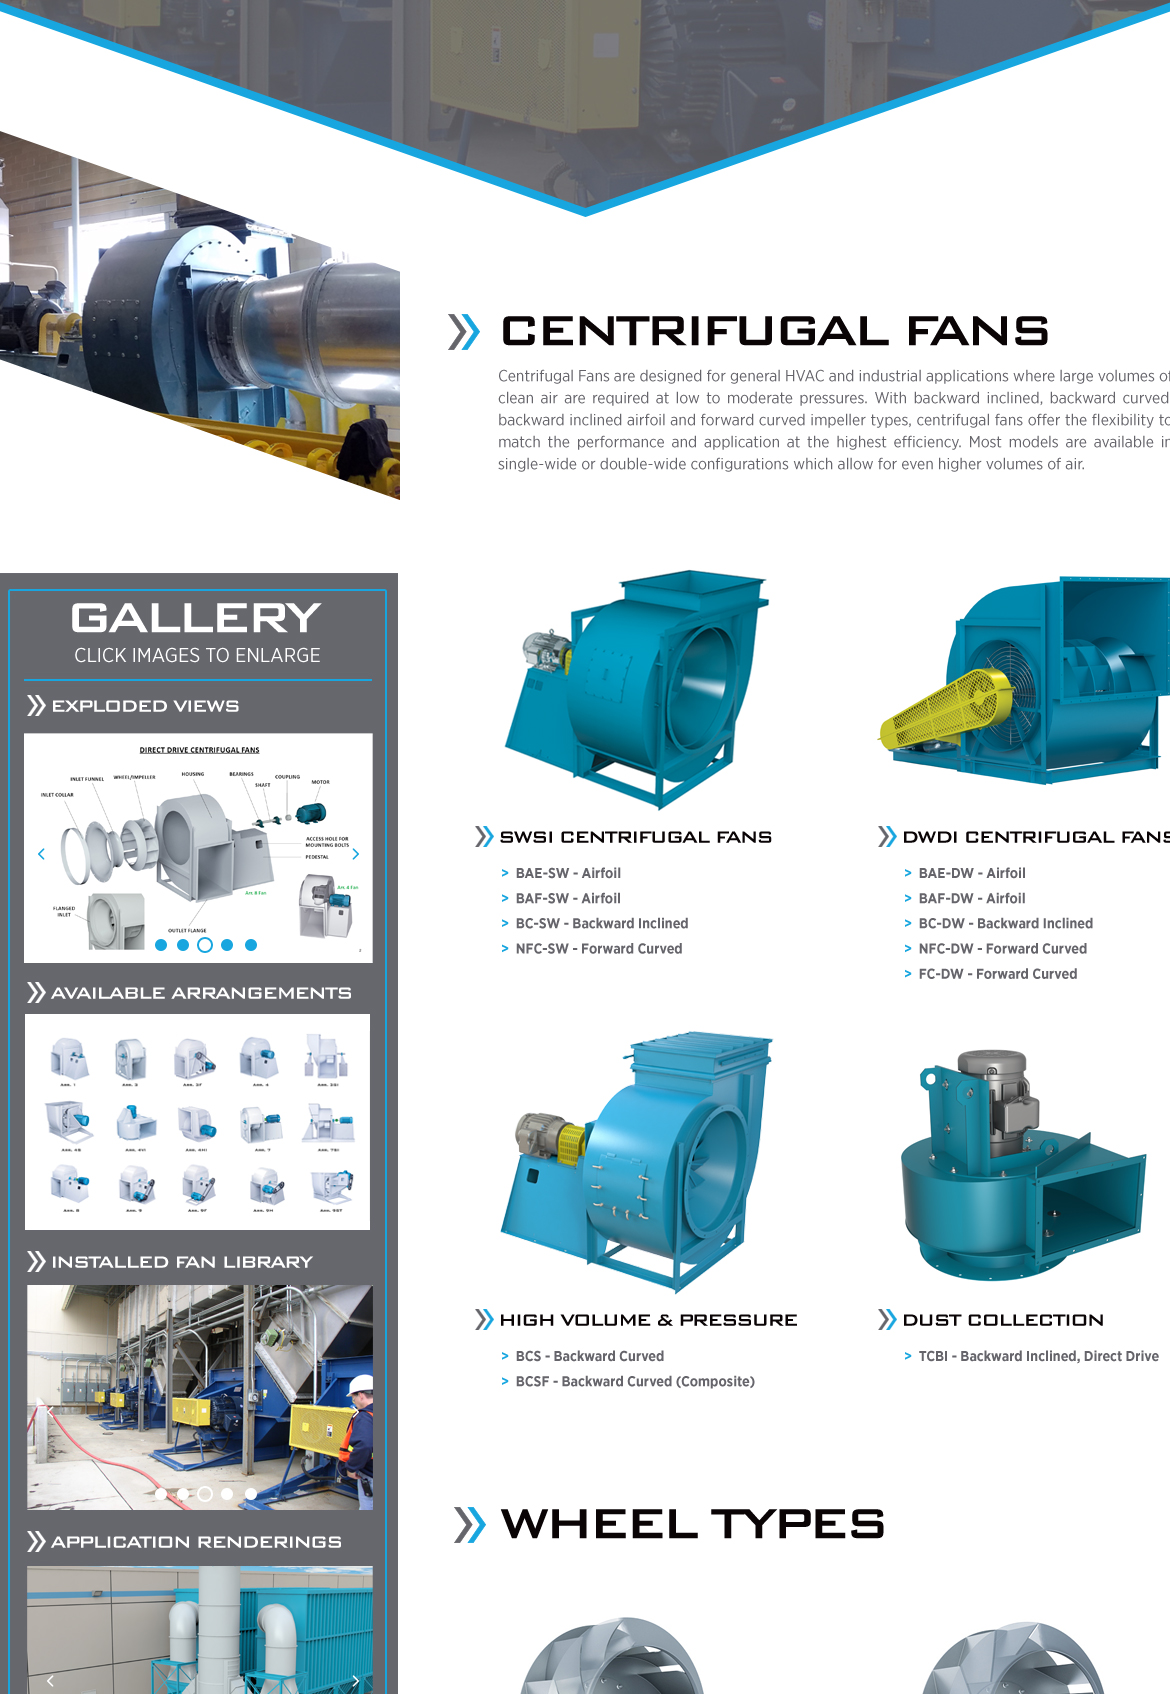 Free Flow Exhaust >> Twin City Fan and Blower | Industrial OEM Fan and Blower Manufacturing